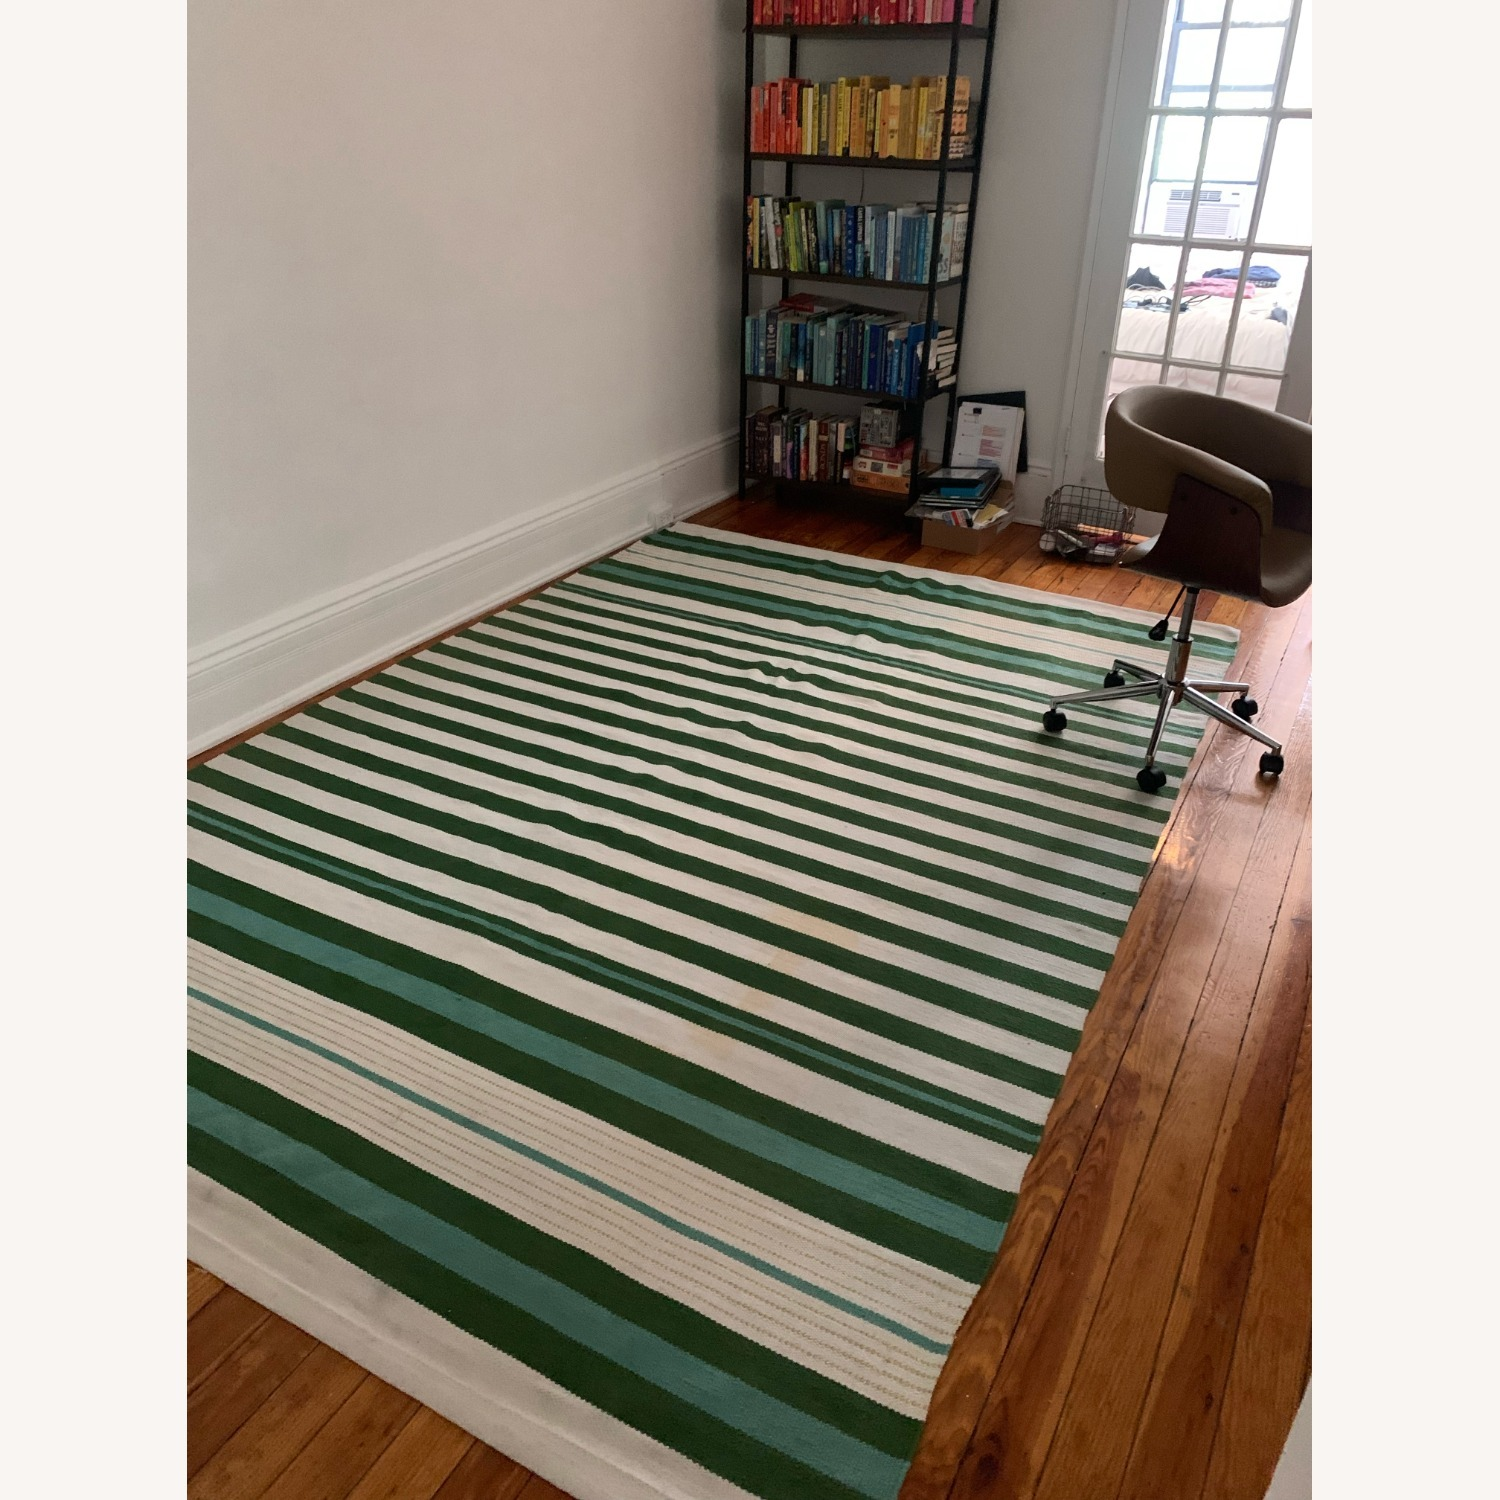 Target Teal Green Striped Woven Rug 7 x 10 - image-1